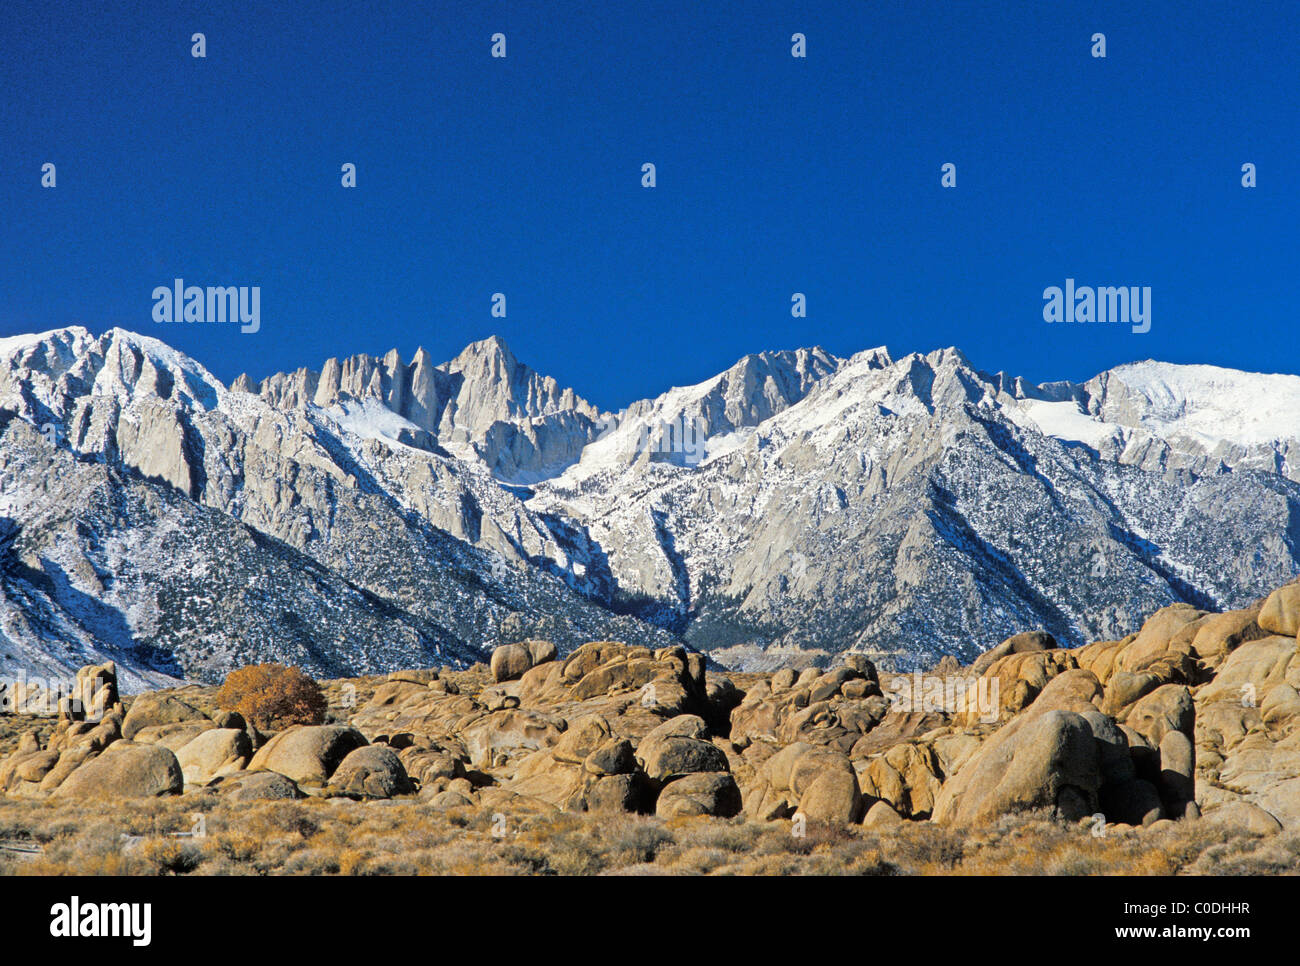 Mount Whitney and Whitney Portals, Sierra Nevada Mountains, California, with Alabama Hills in the foreground. - Stock Image